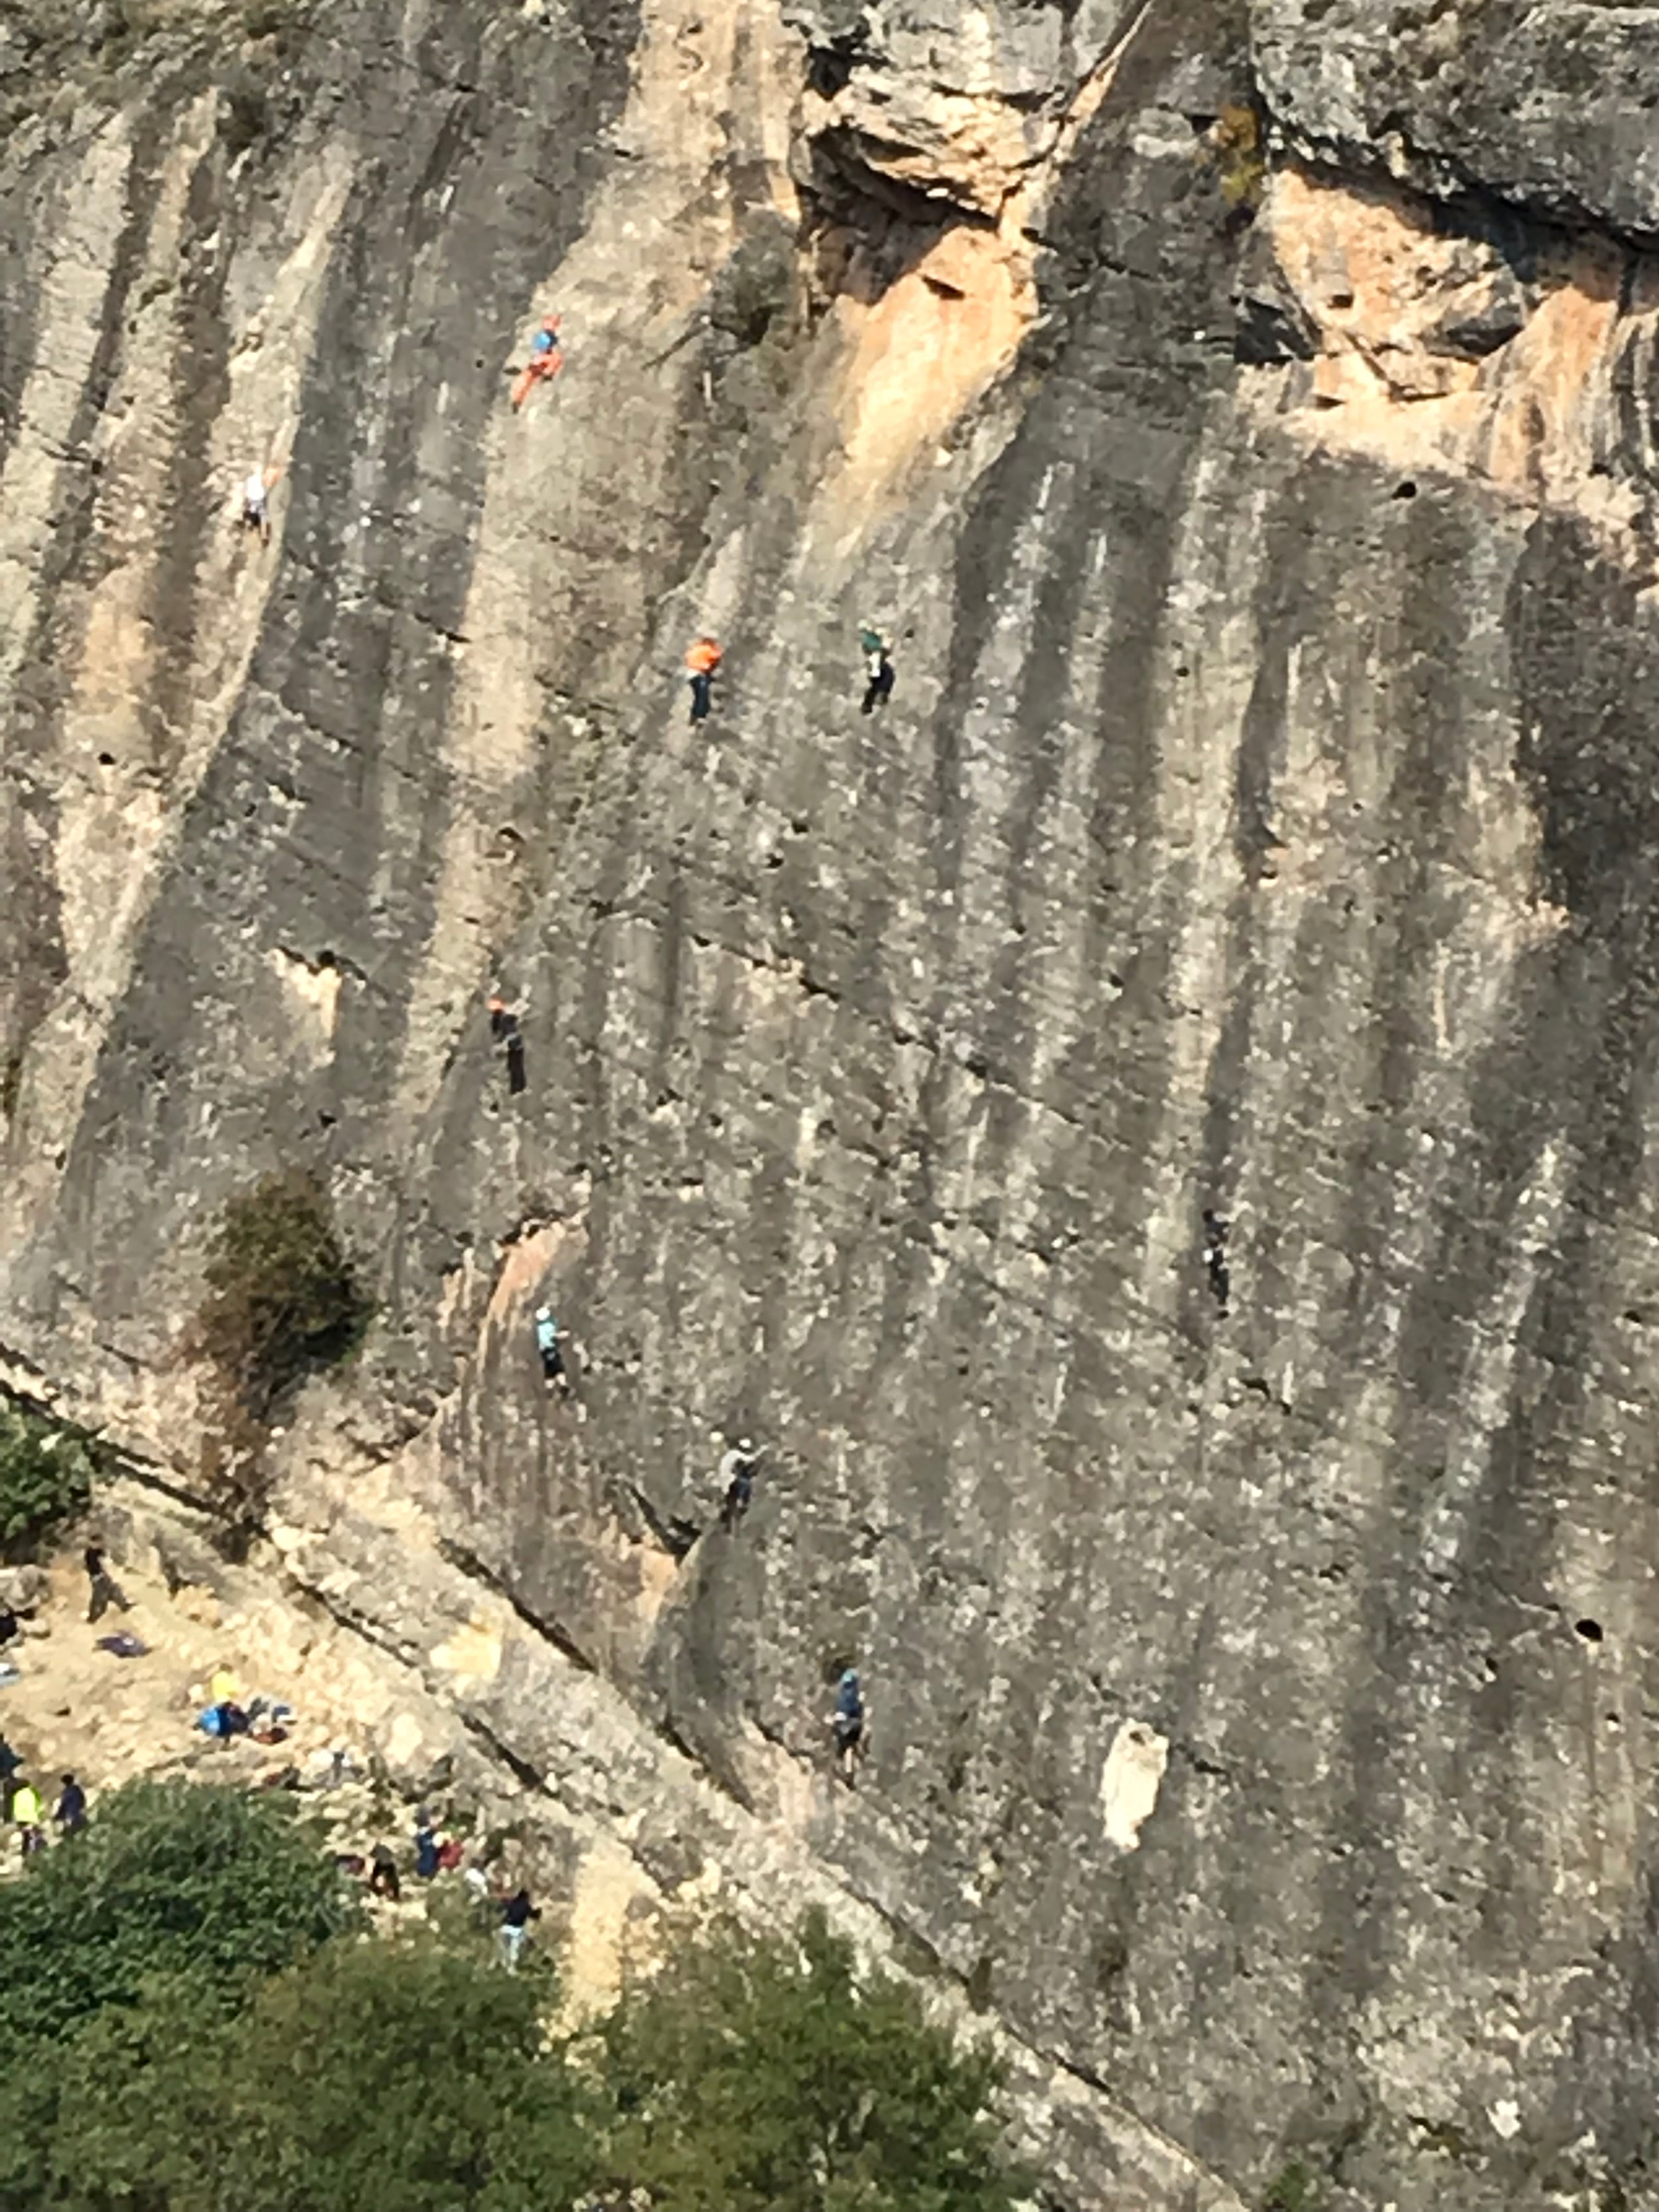 zoomed perspective on number of climbers at the crag